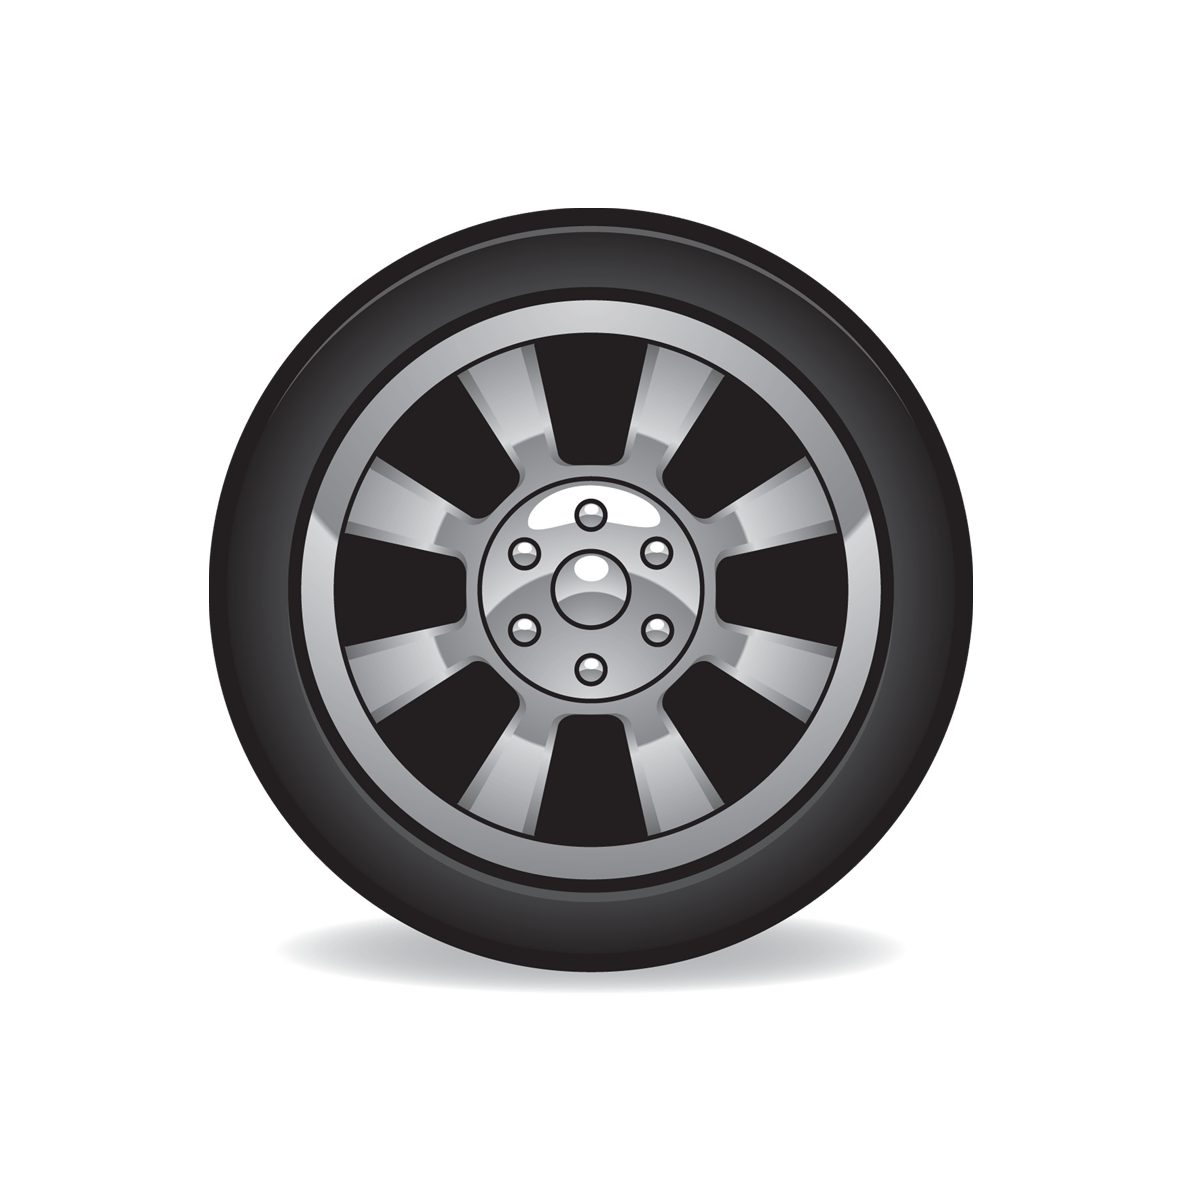 Tire Icon Full Size Free Images At Clker Com Vector